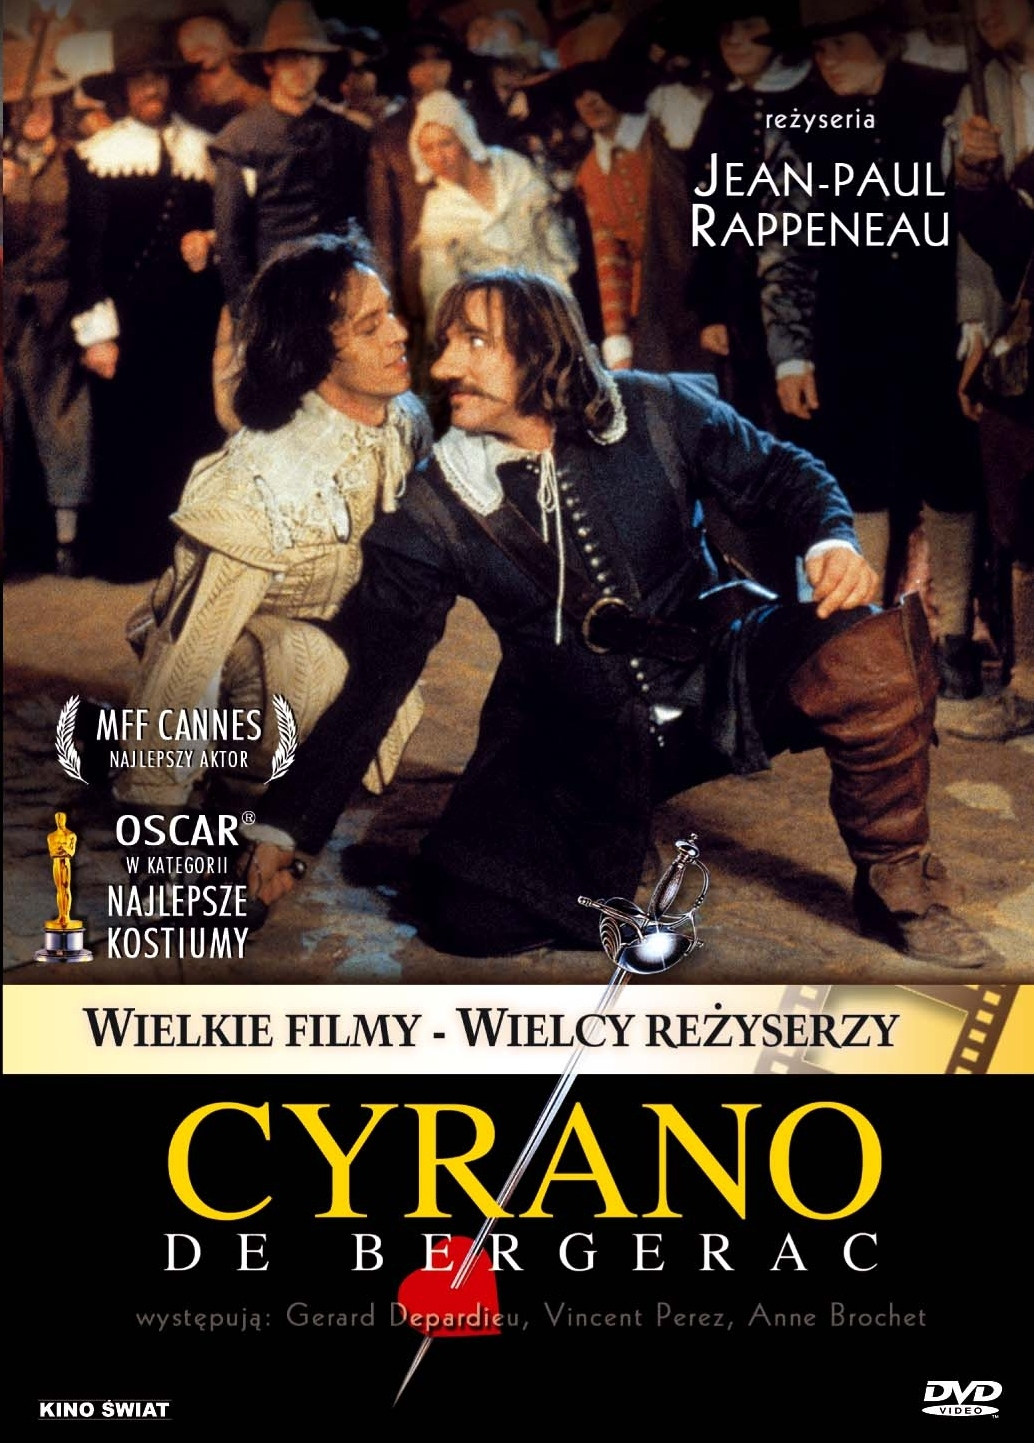 """honor is cyrano de bergerac Roberto alagna sings the title character's act i aria from """"cyrano de bergerac"""" during the gala celebration in honor of joseph volpe in 2006 conductor: plác."""